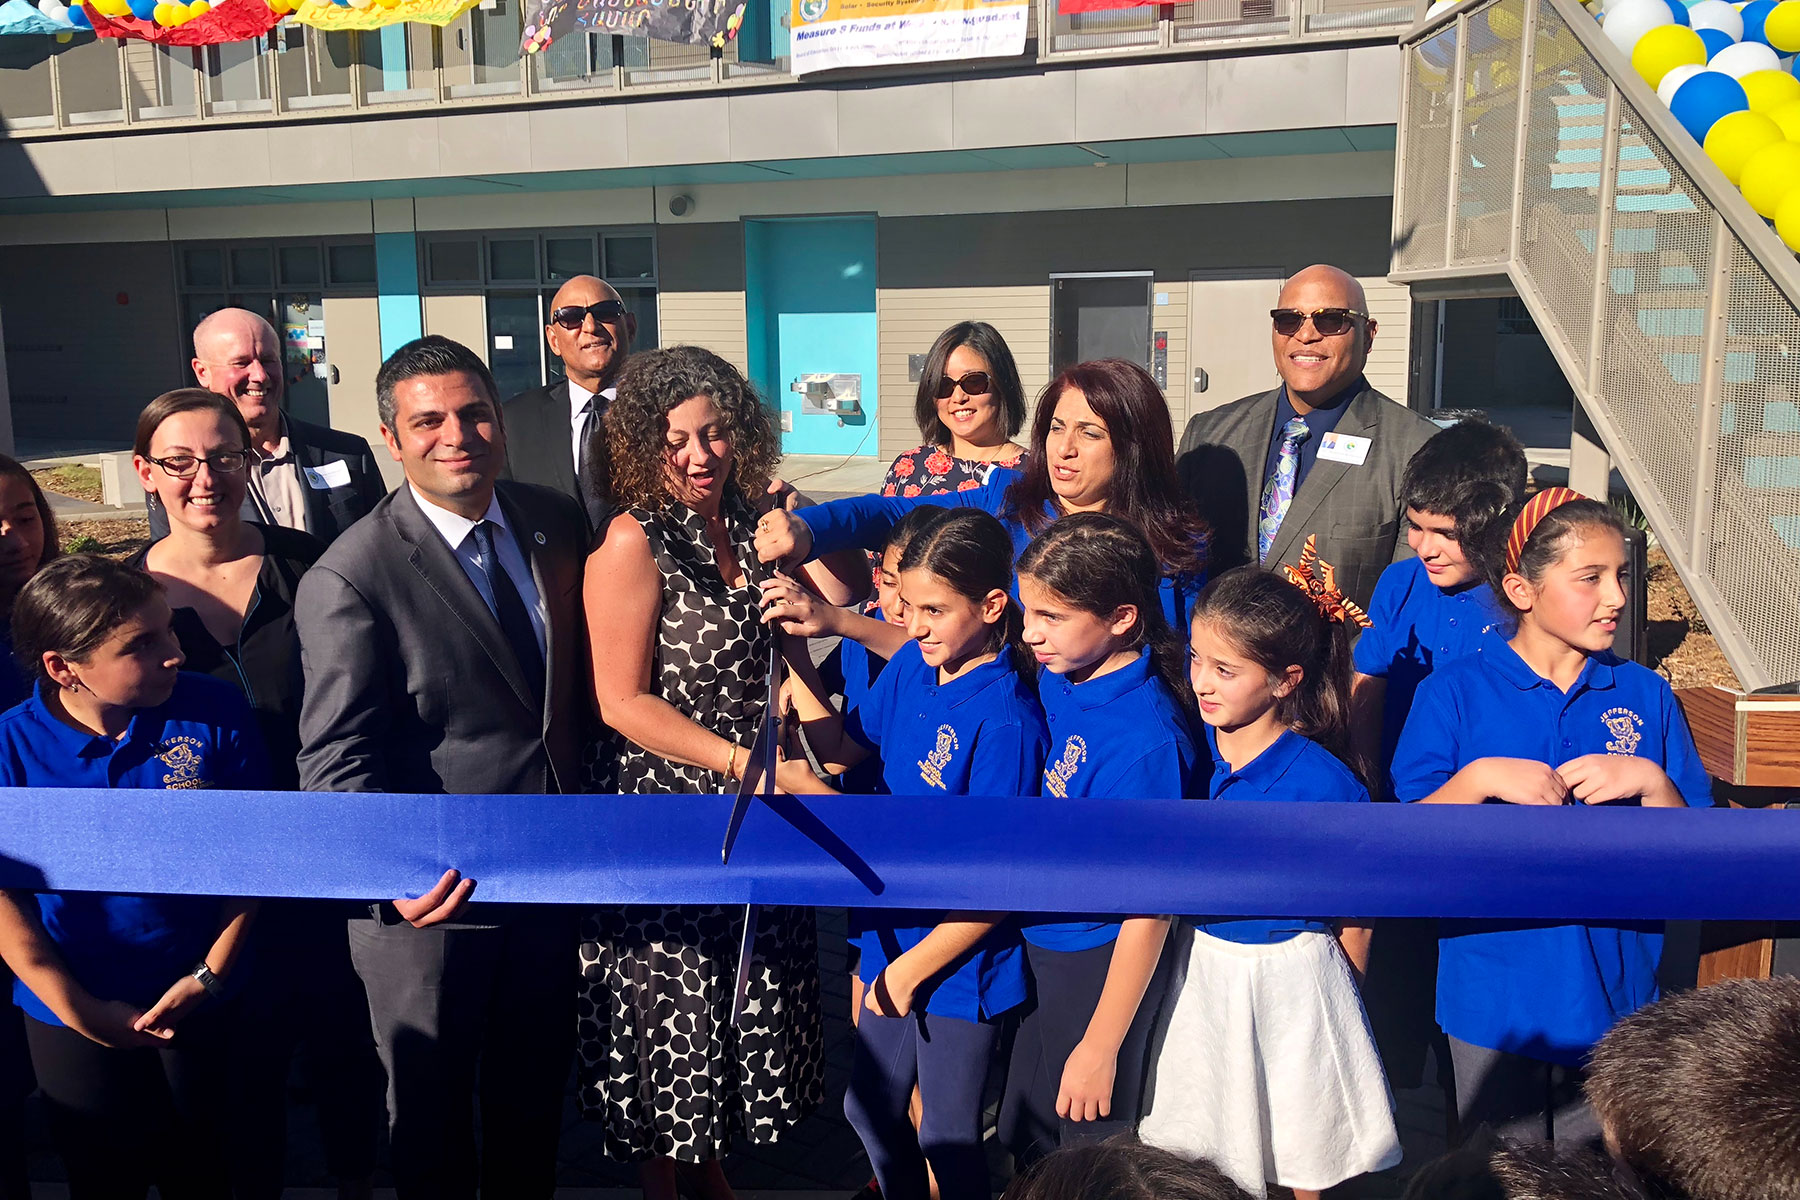 Jefferson Elementary School Measure S Ribbon Cutting Ceremony October 2018